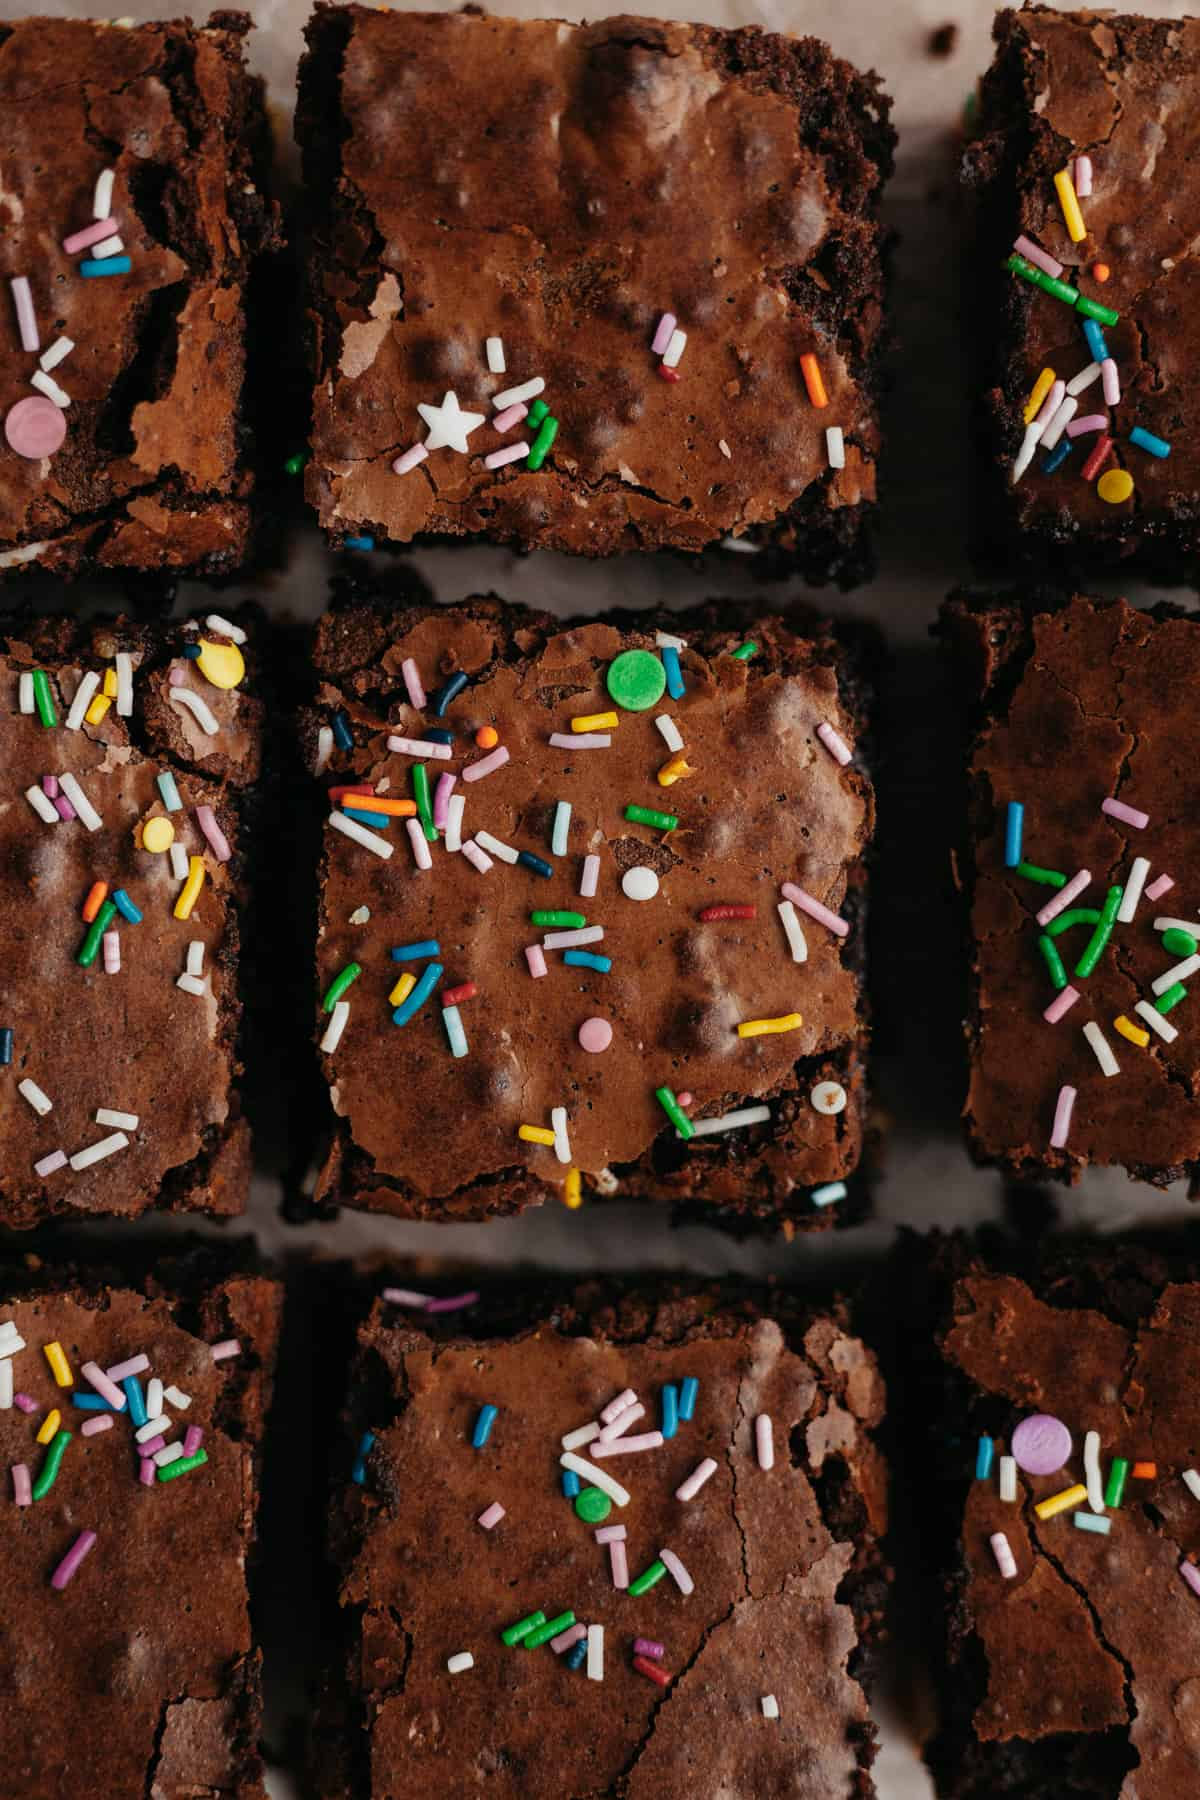 Brownies with sprinkles on top cut into squares